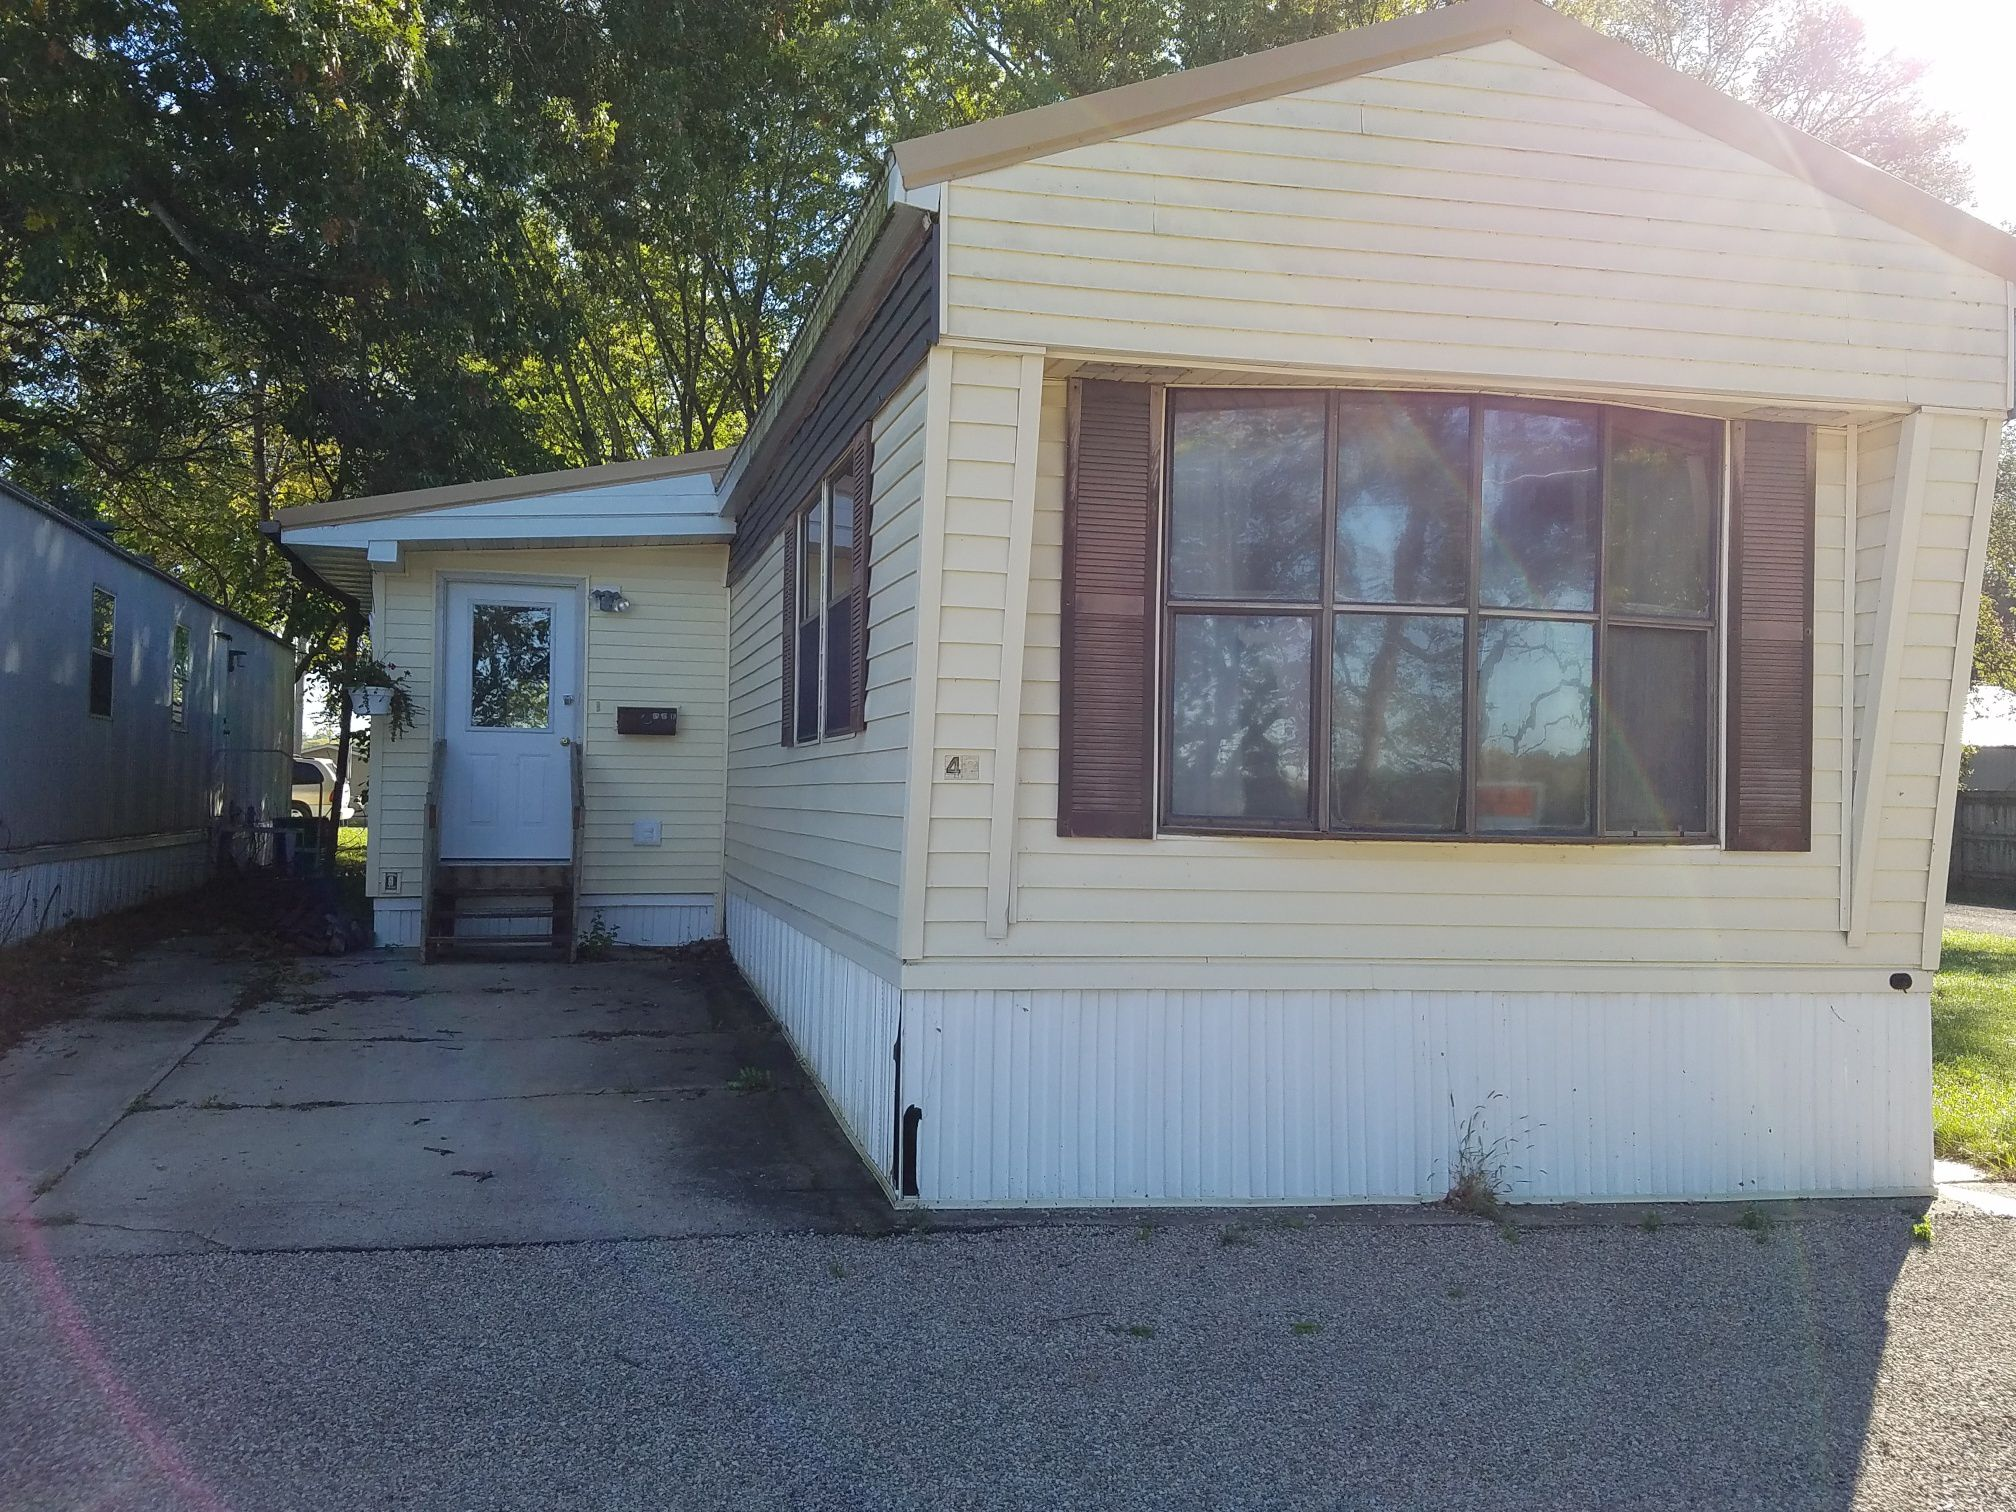 2 Bedroom, 1 bath Mobile Home For Sale Independence, IA image 1